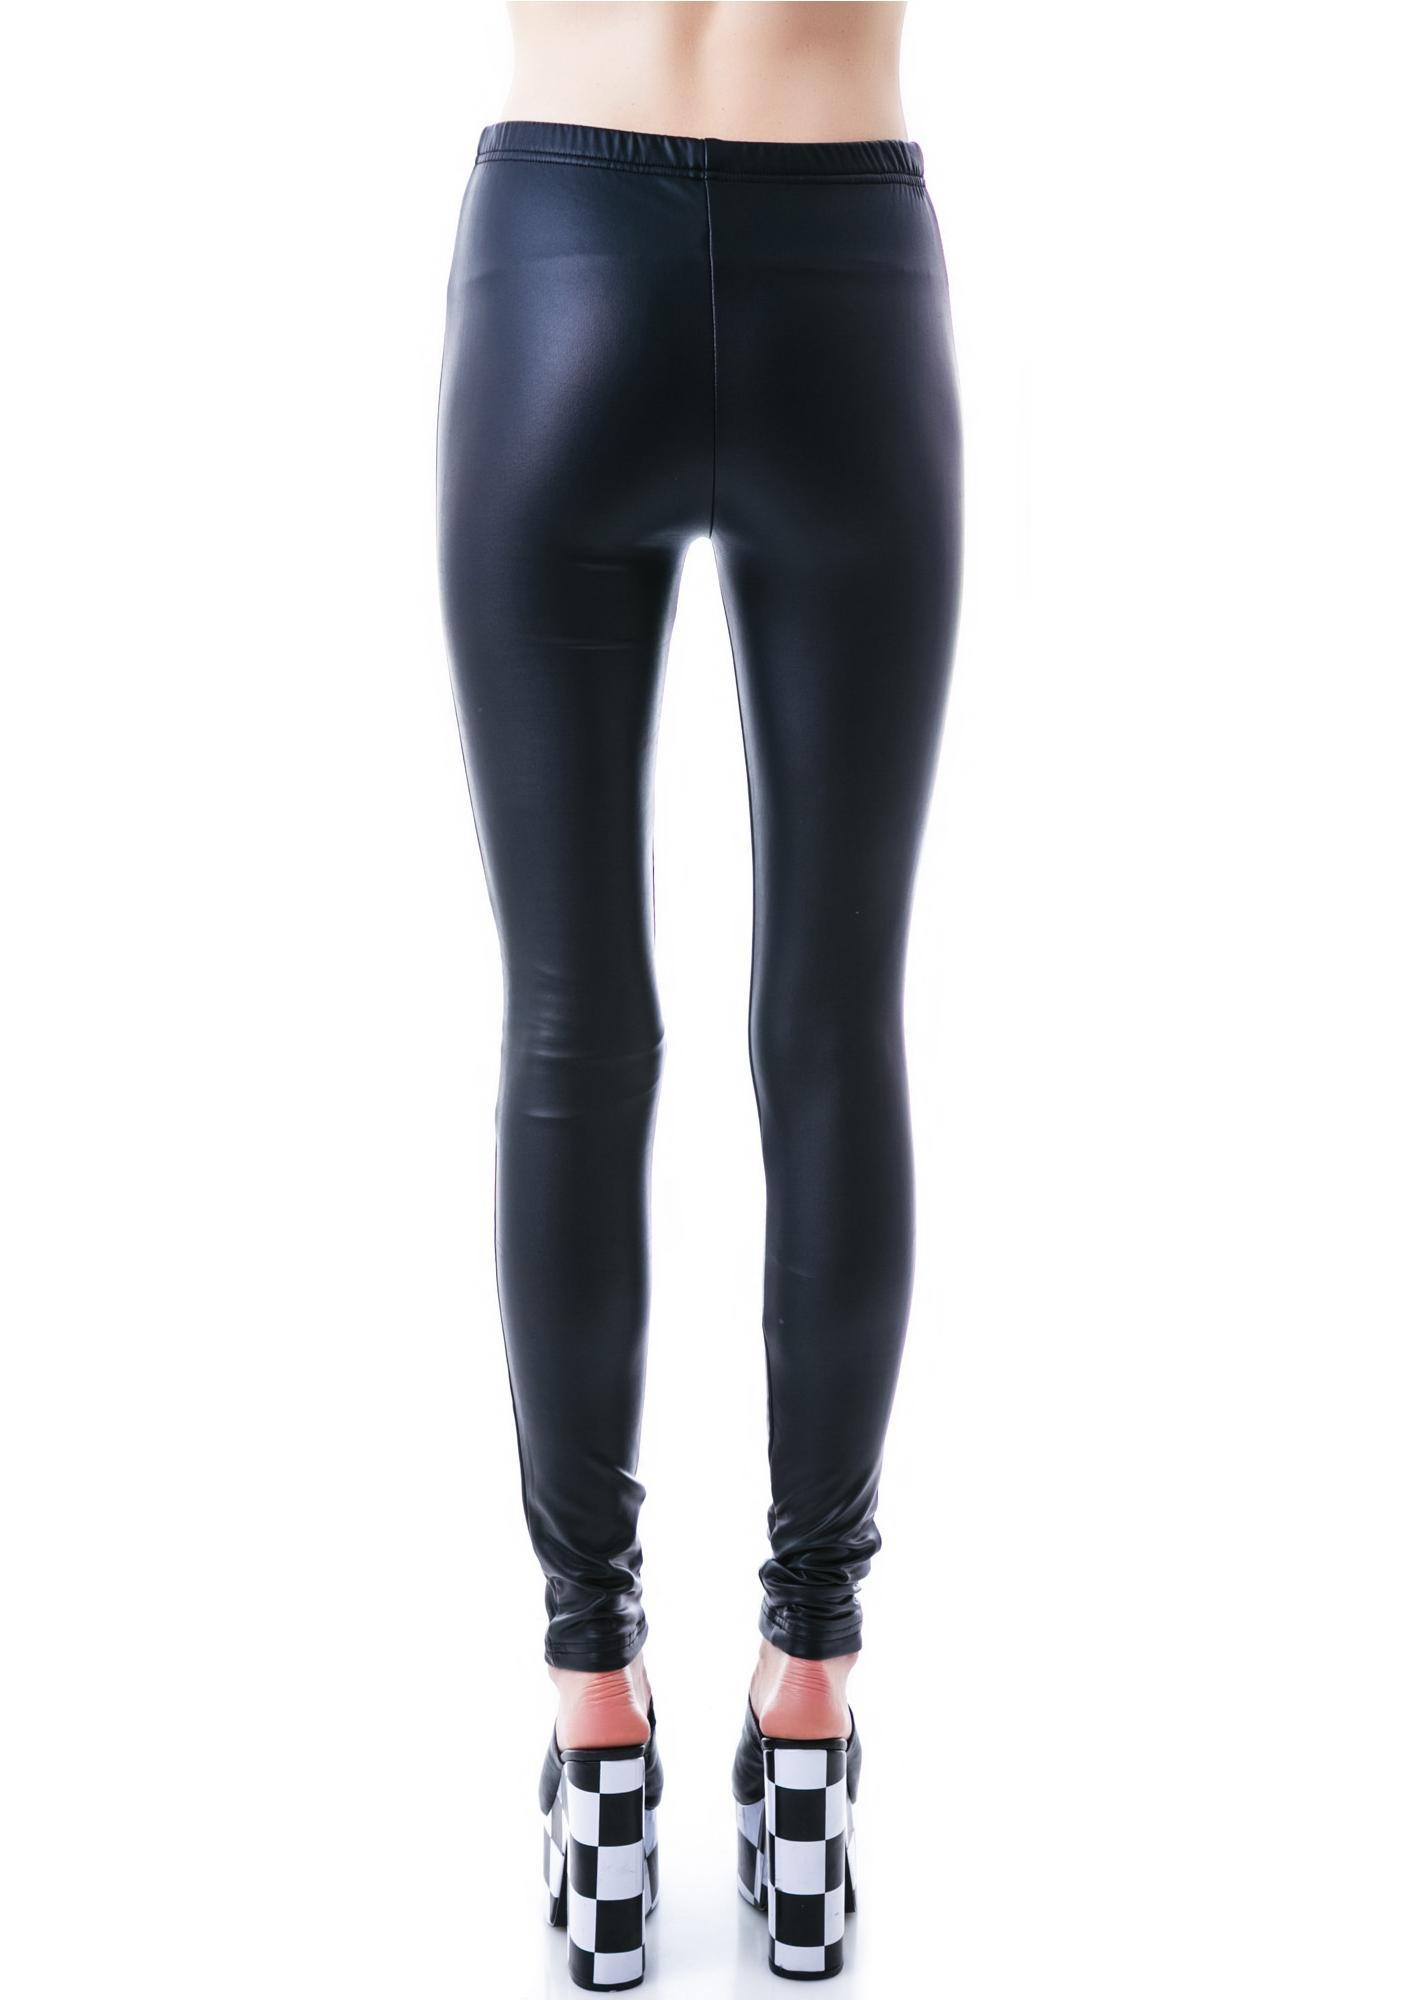 Plush Liquid Fleece Lined Leggings